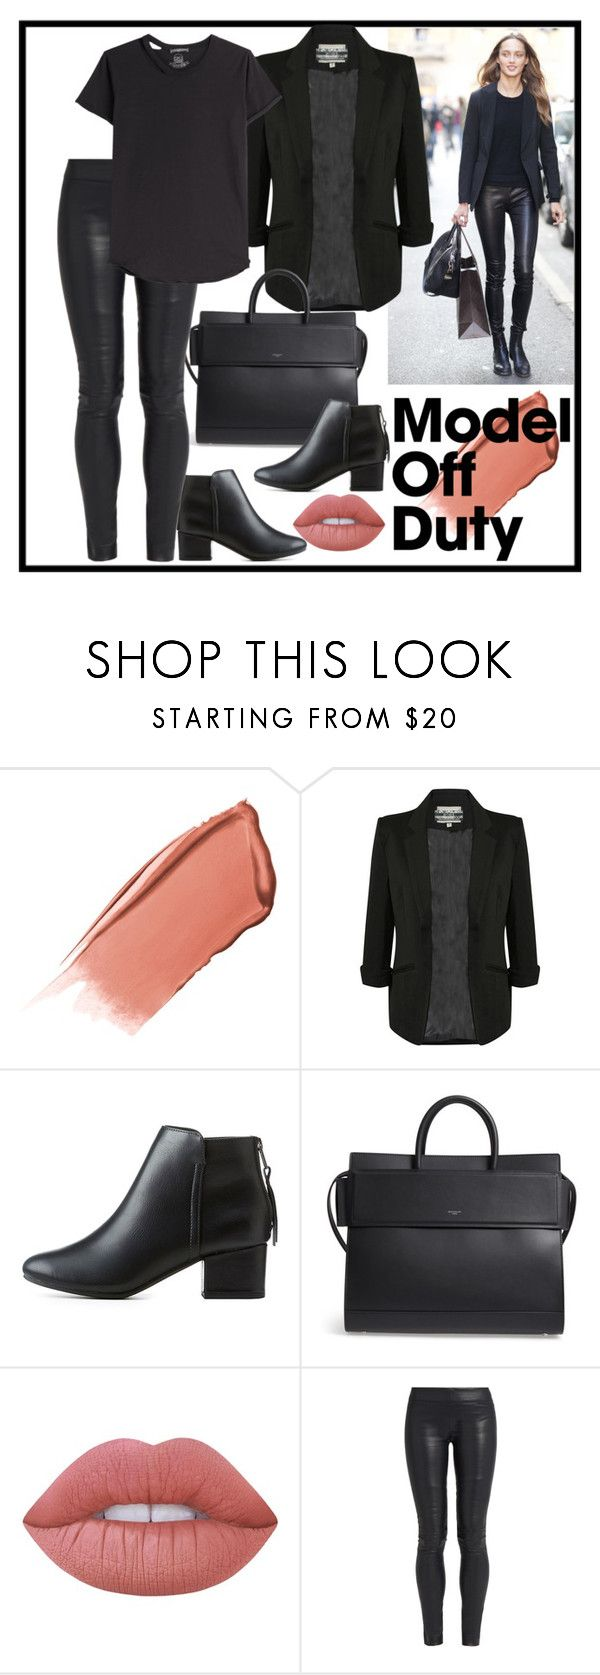 """""""It-Girl: Model Off Duty"""" by terryandjim ❤ liked on Polyvore featuring Hourglass Cosmetics, Pilot, City Classified, Givenchy, Lime Crime, The Row, Alexander McQueen and modeloffduty"""